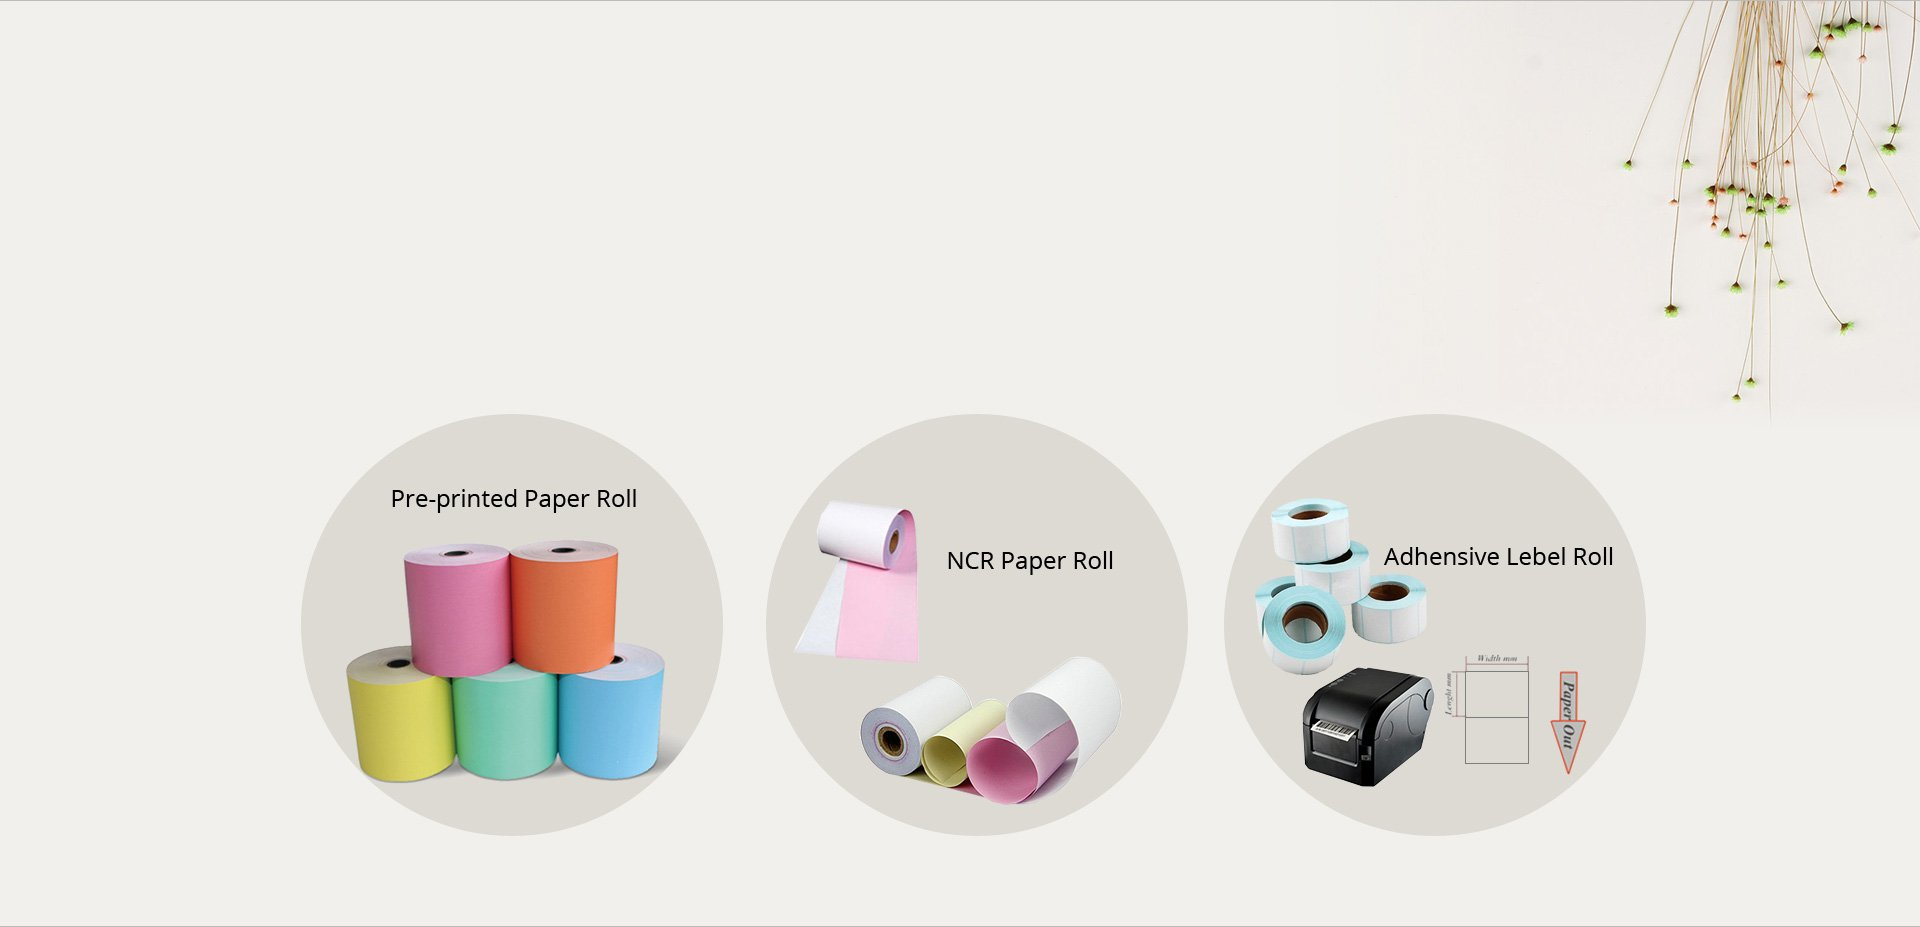 NCR Paper Roll